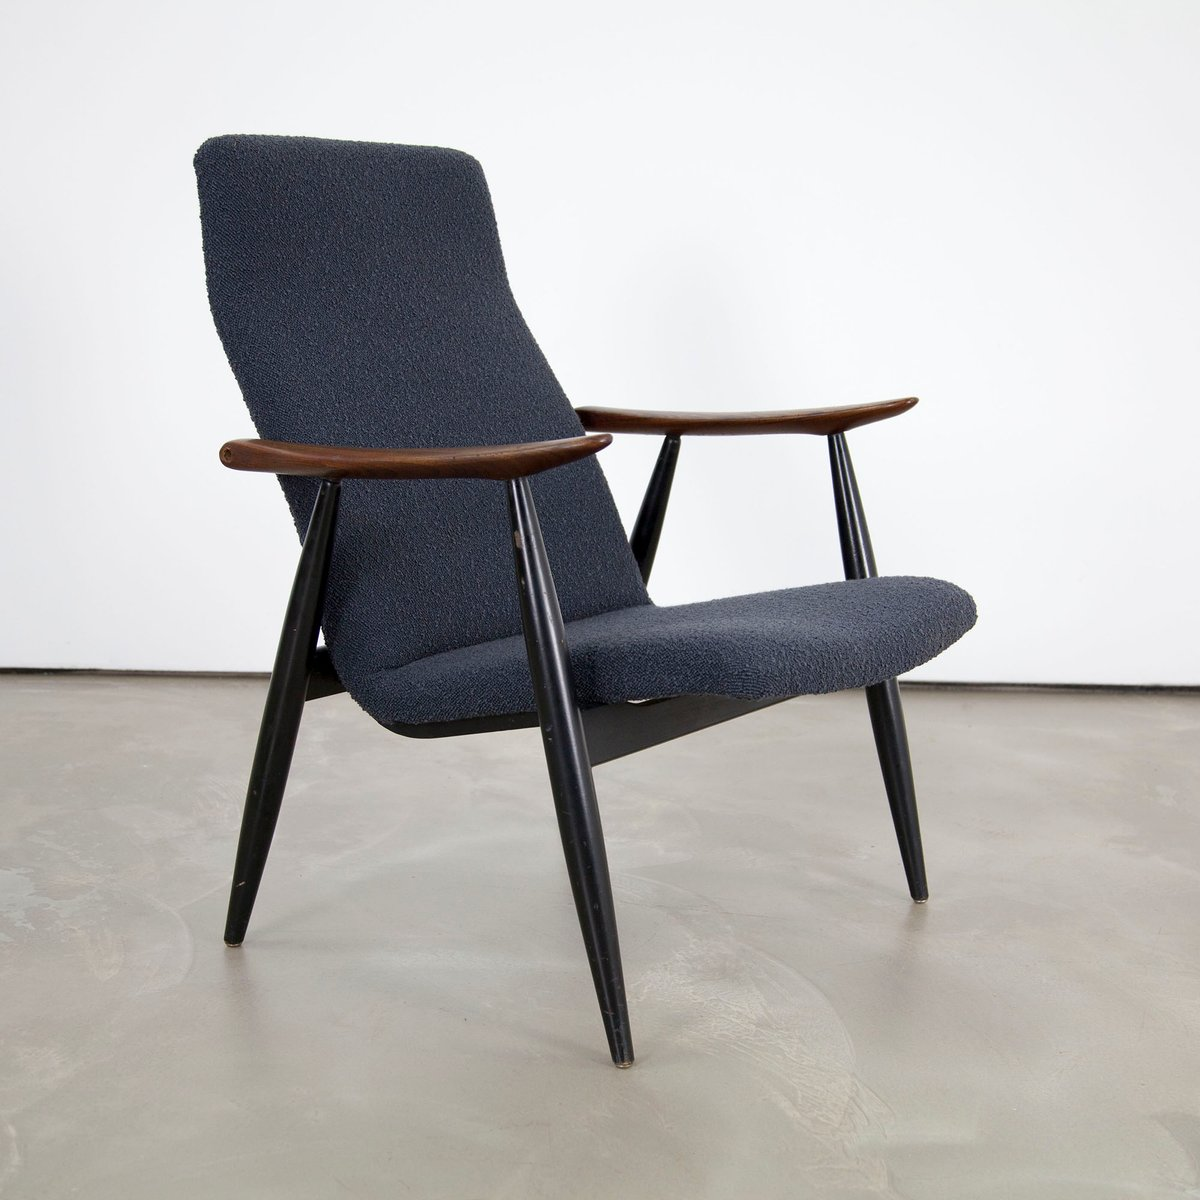 Lounge Chair vintage scandinavian lounge chair by olli borg for asko for sale at